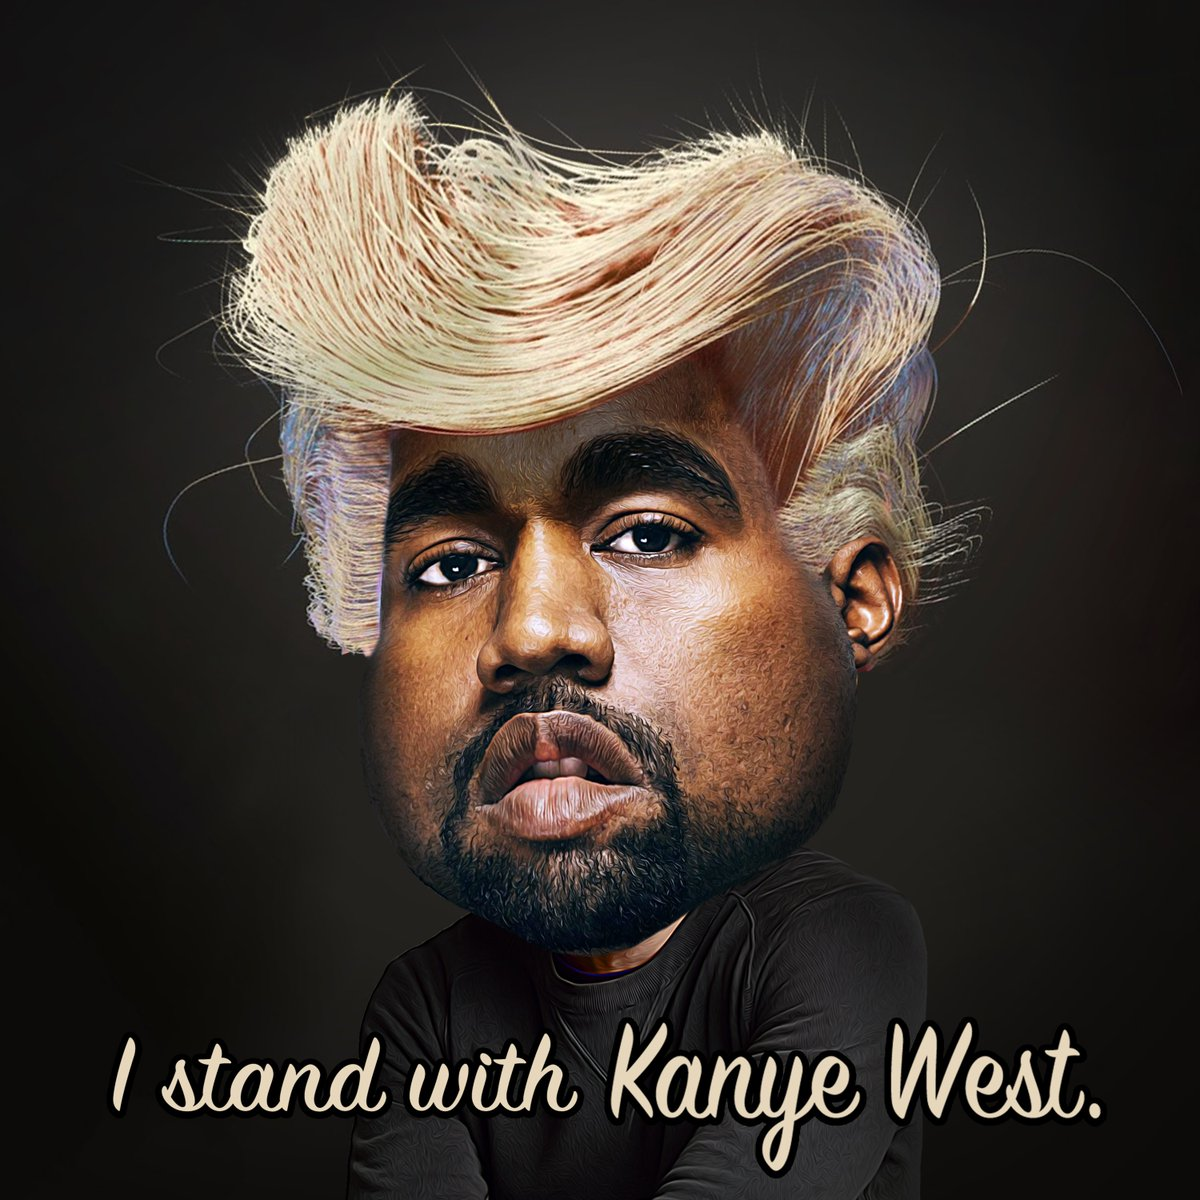 Kanye is right about the 13th amendment.  Fight with me.     https:// kprcradio.iheart.com/featured/the-p ursuit-of-happiness/content/2018-10-12-kanye-west-is-right-about-the-13th-amendment/ &nbsp; … <br>http://pic.twitter.com/qEJ4OwXt3k